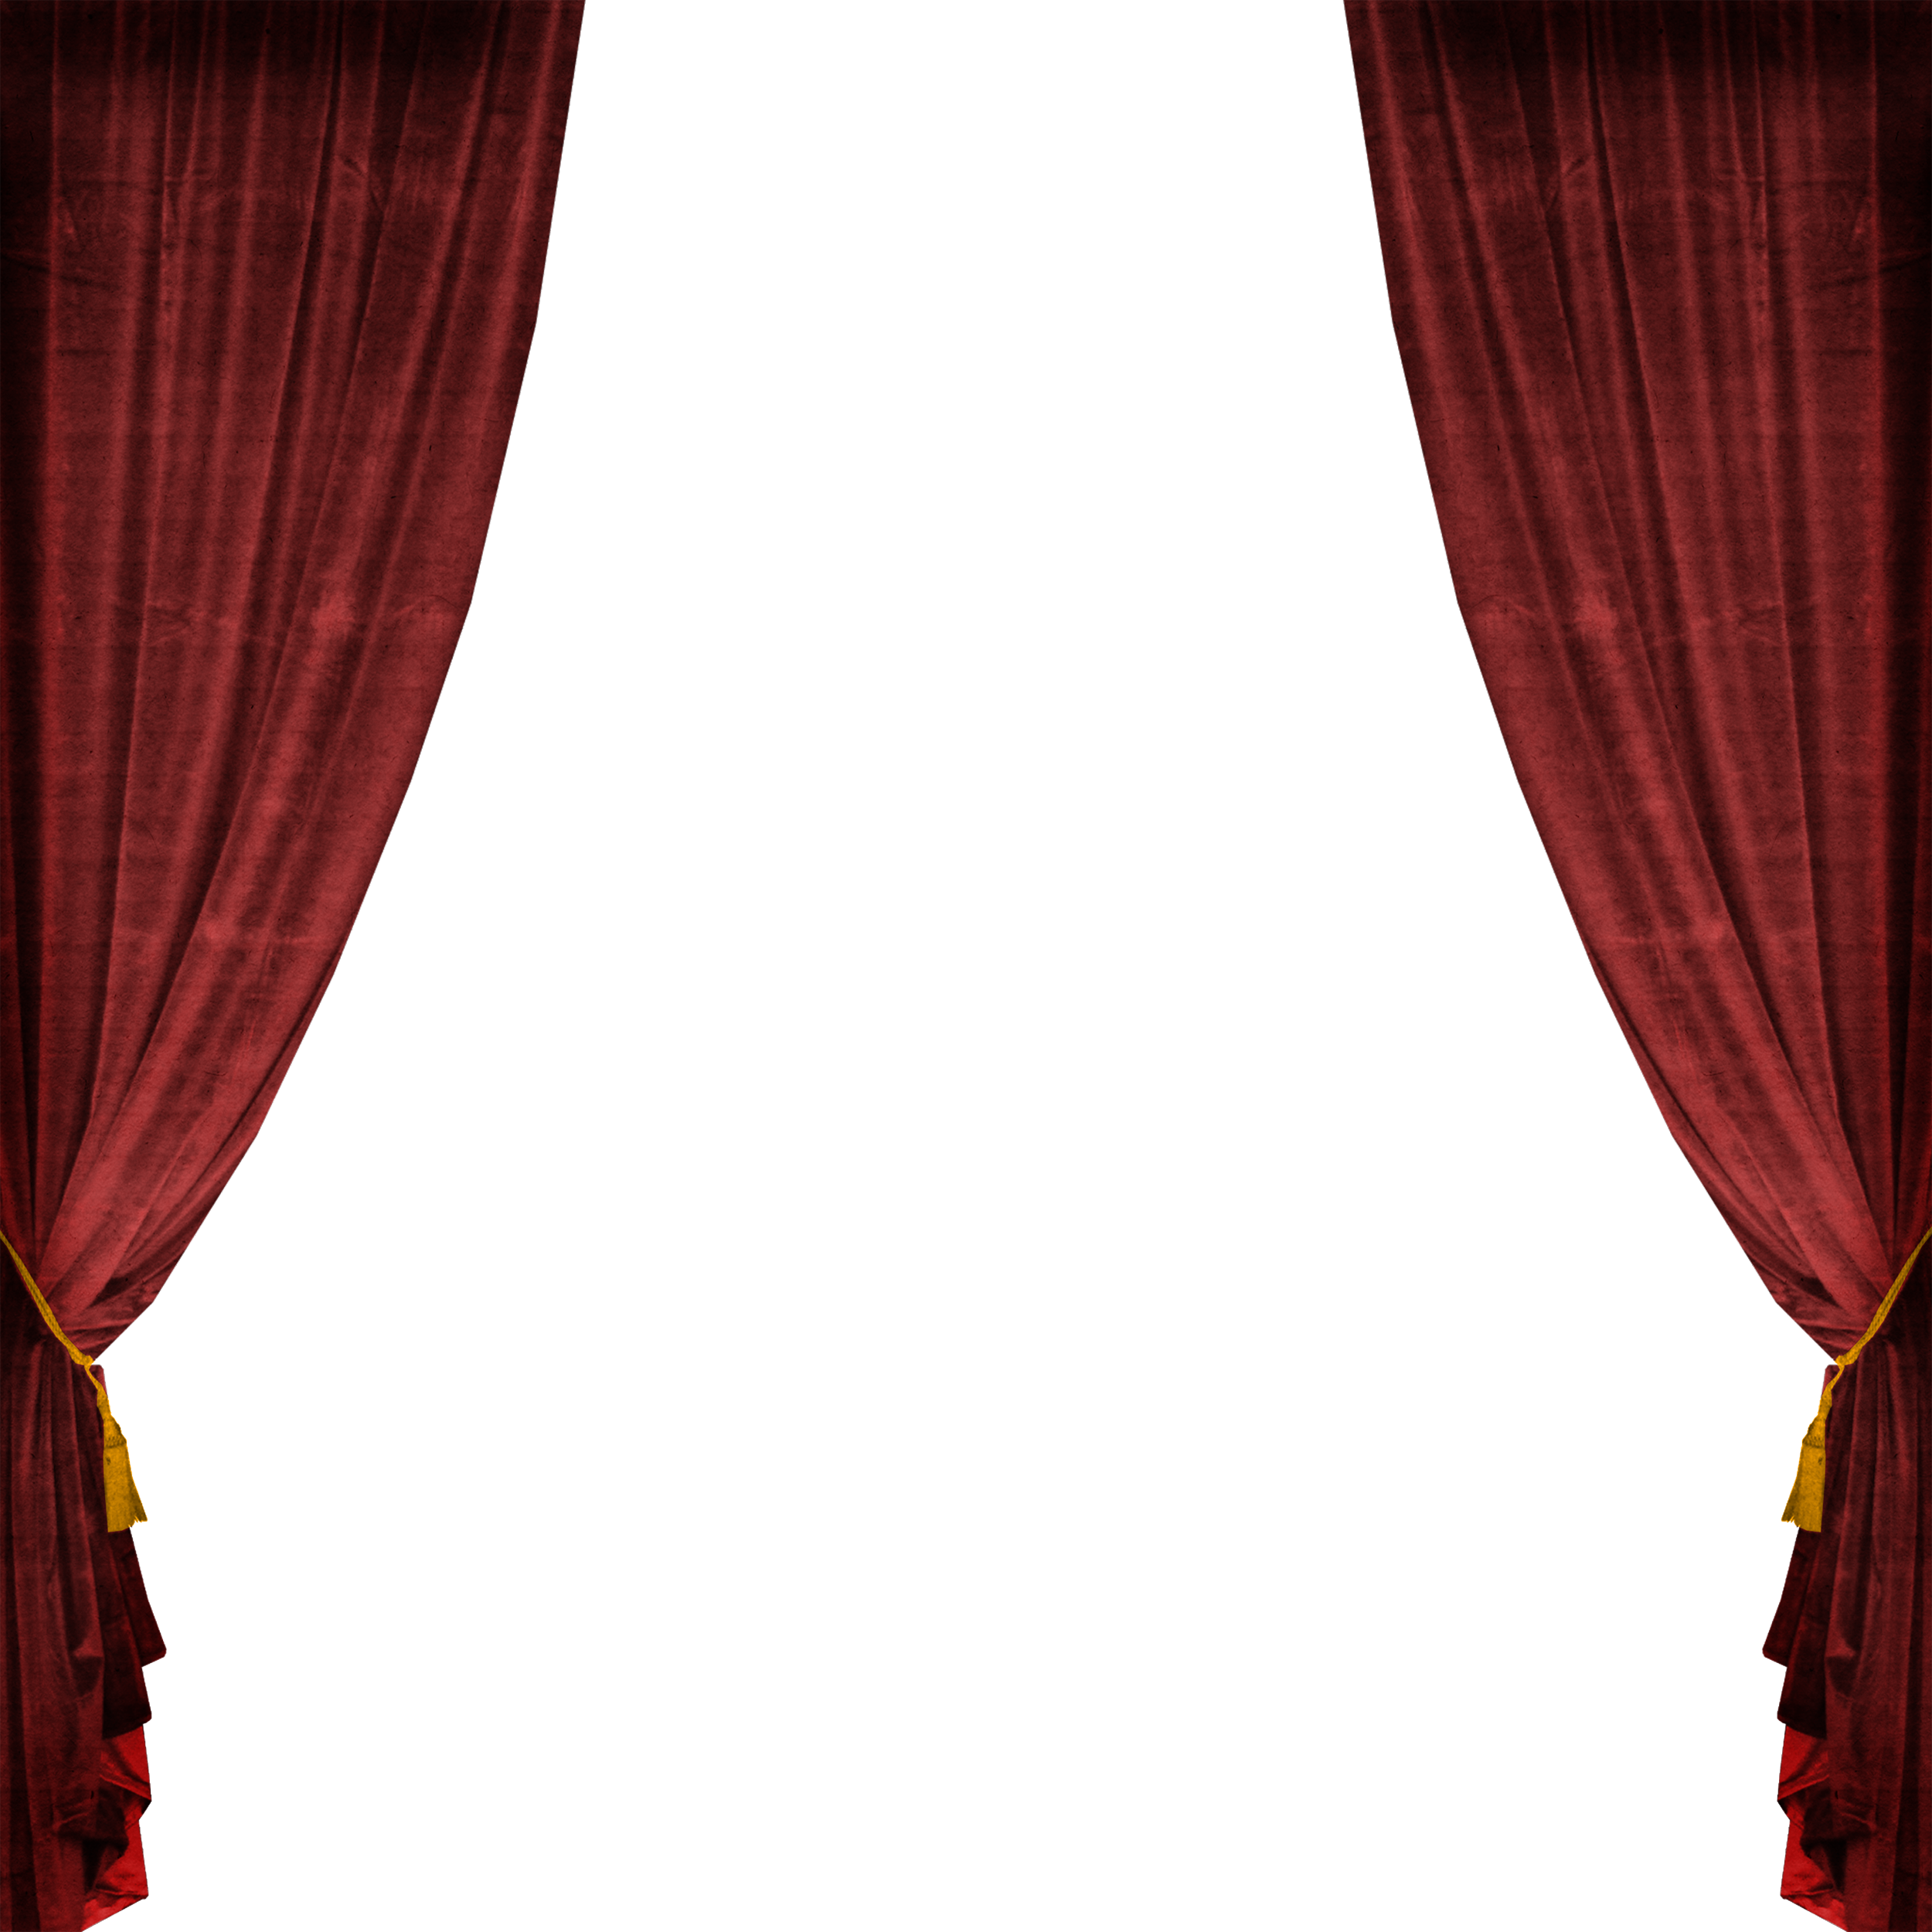 Brown stage curtains png. Images free download